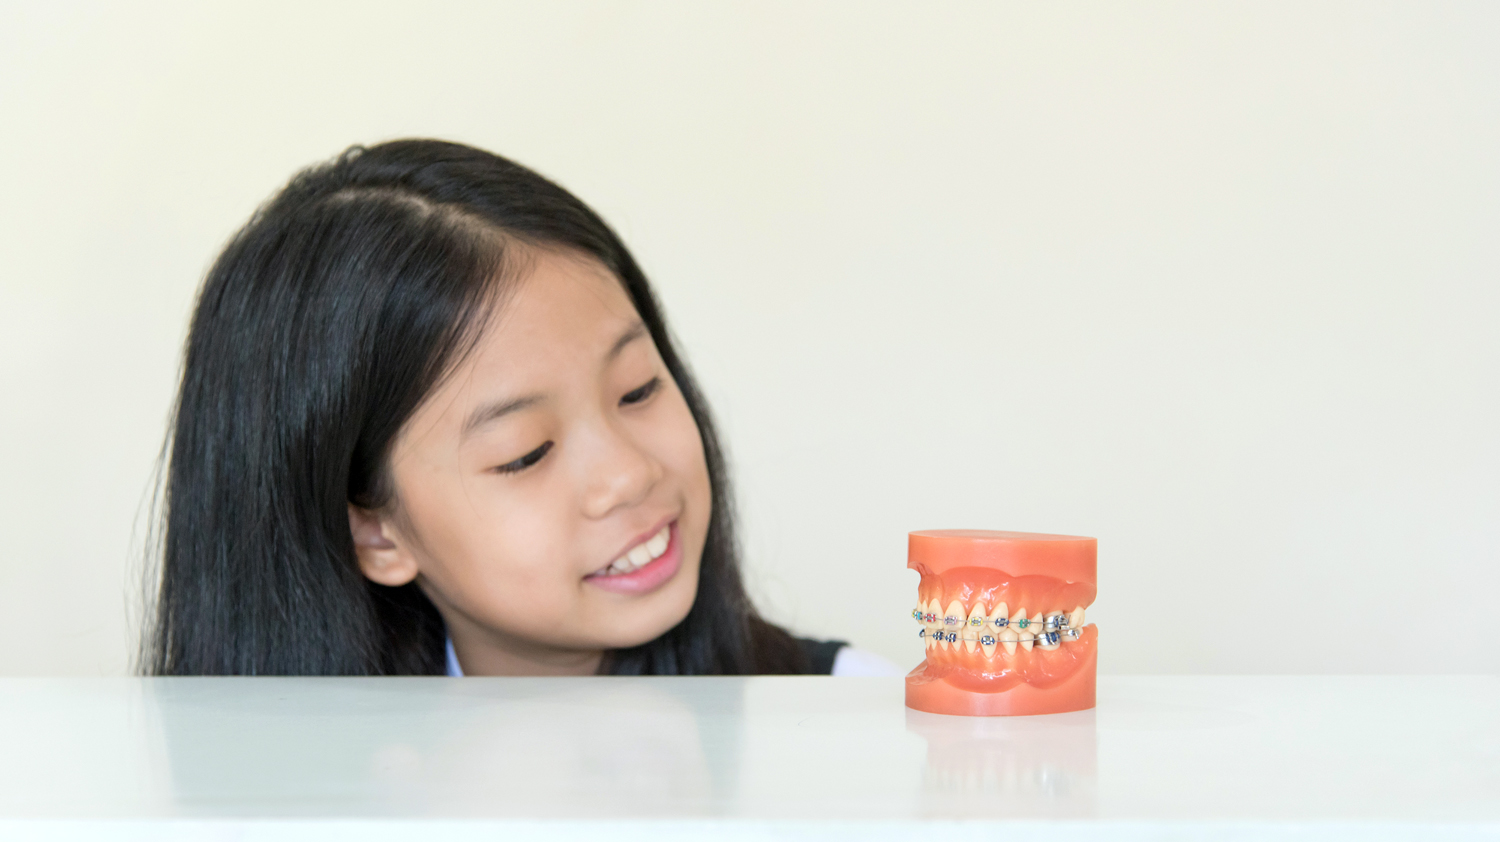 How to Prepare for Orthodontic Treatment